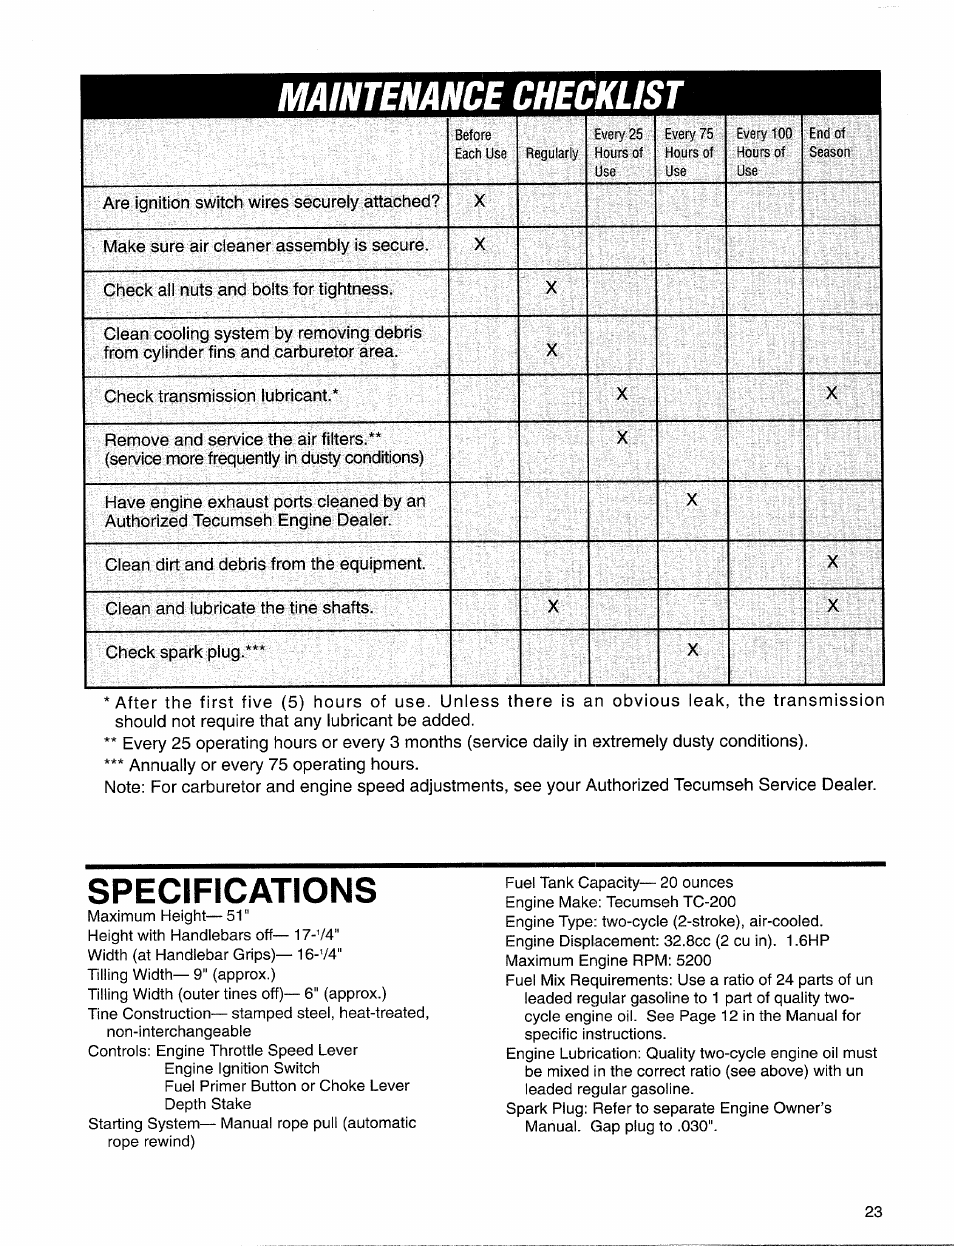 Mamenance checklist, Specifications | Troy-Bilt 12157 User Manual | Page 23  / 24